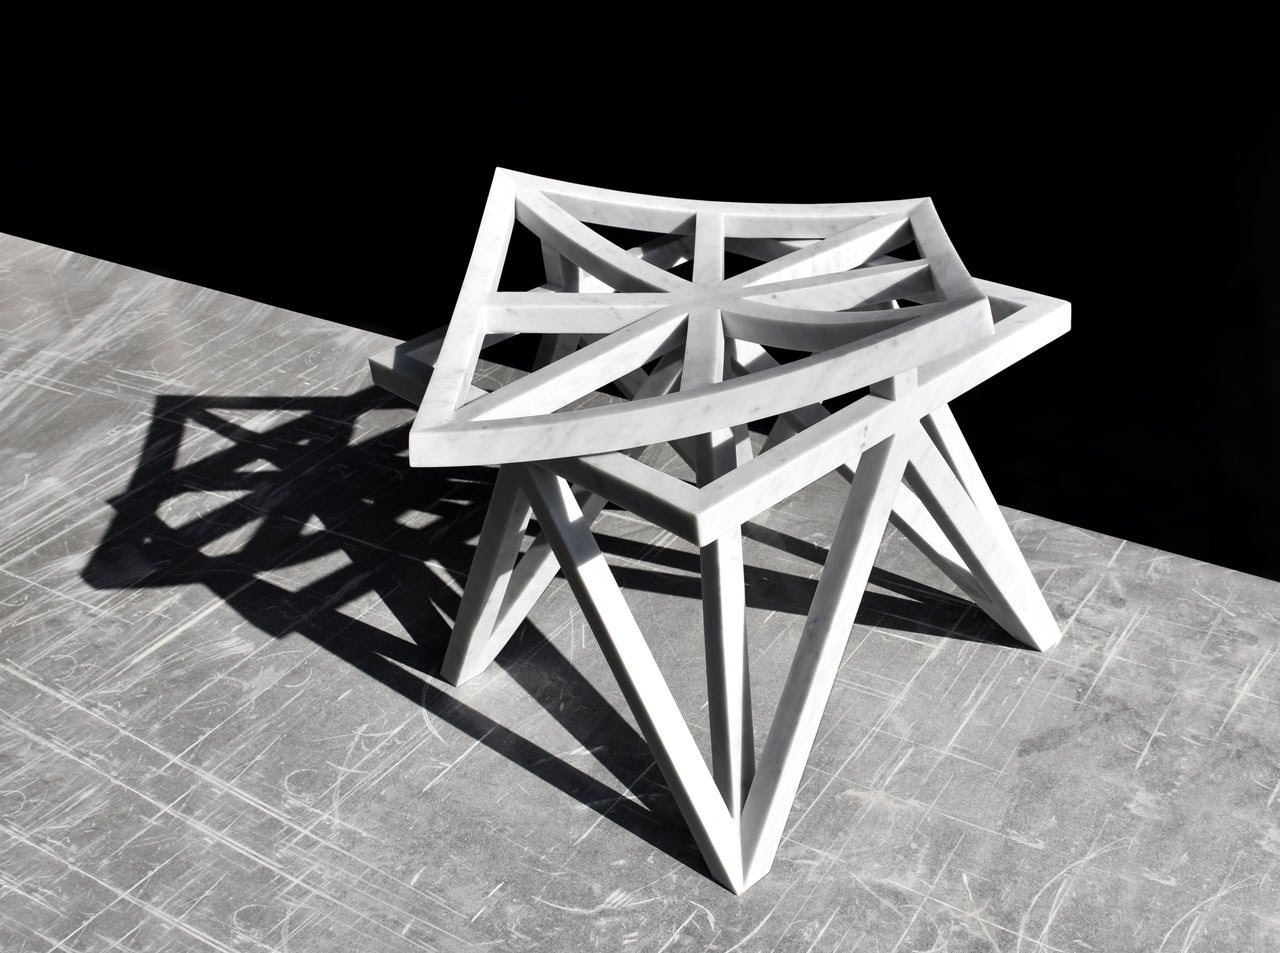 Geometric Furniture Inspired By Arabesque Patterns ...